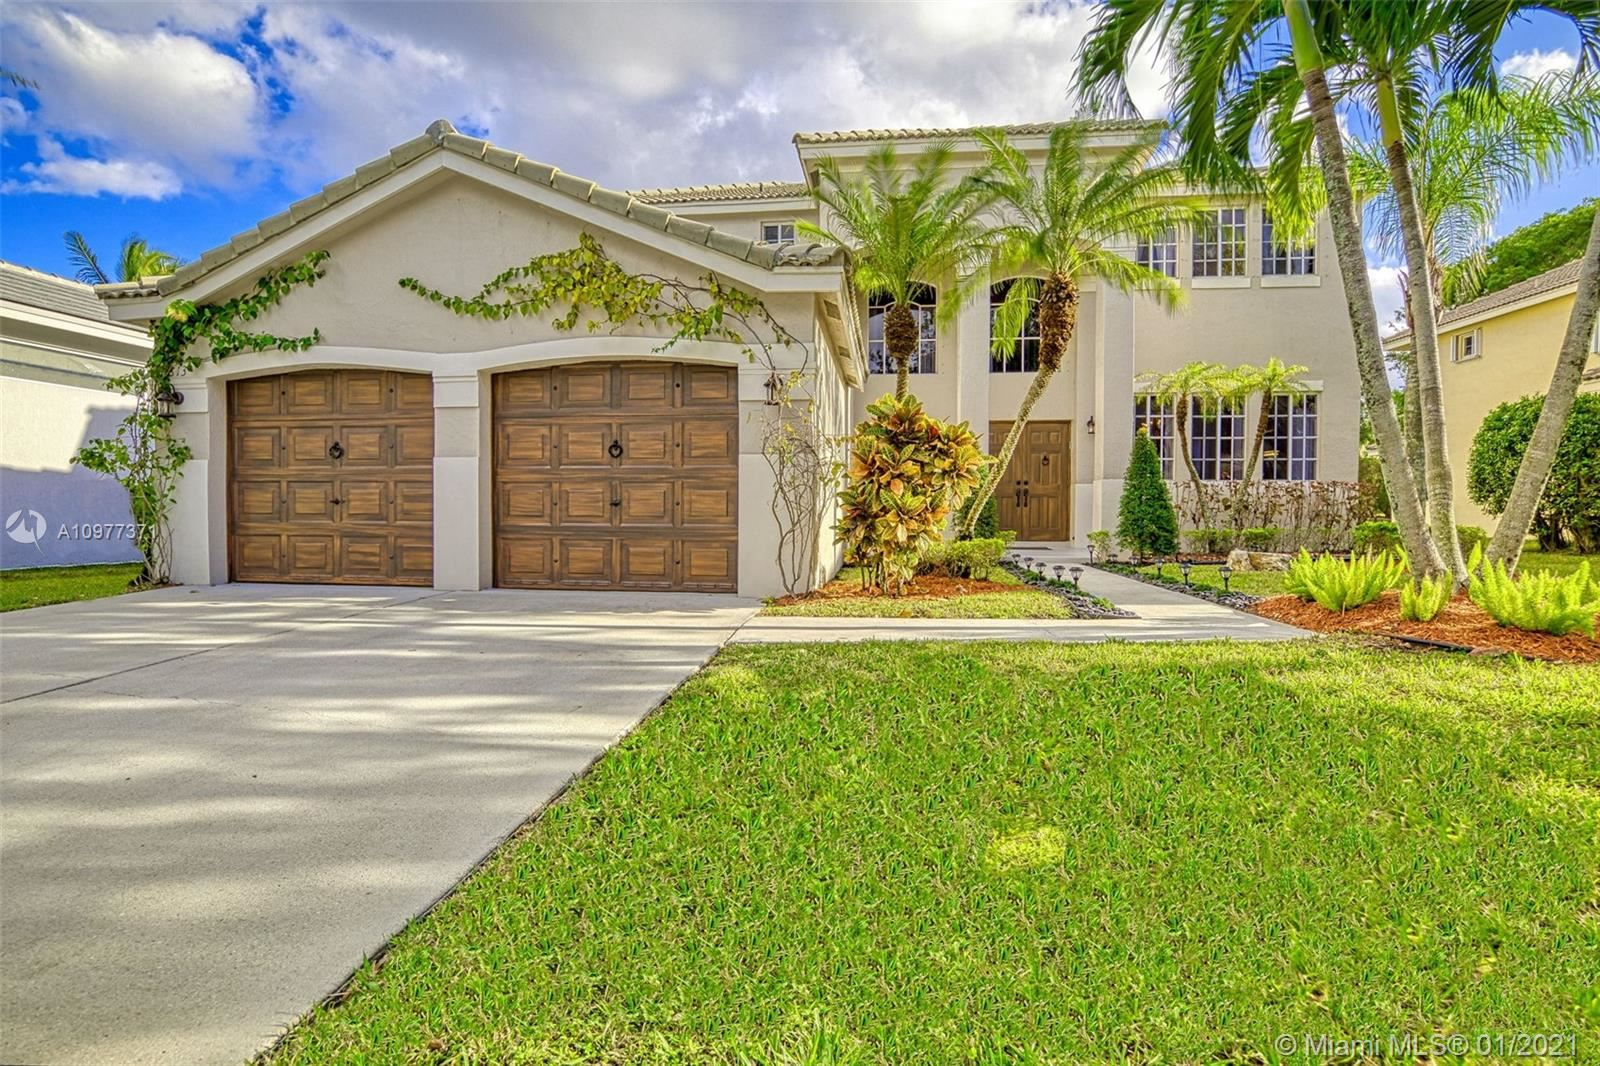 813 Crestview Cir, Weston, FL 33327 - #: A10977371